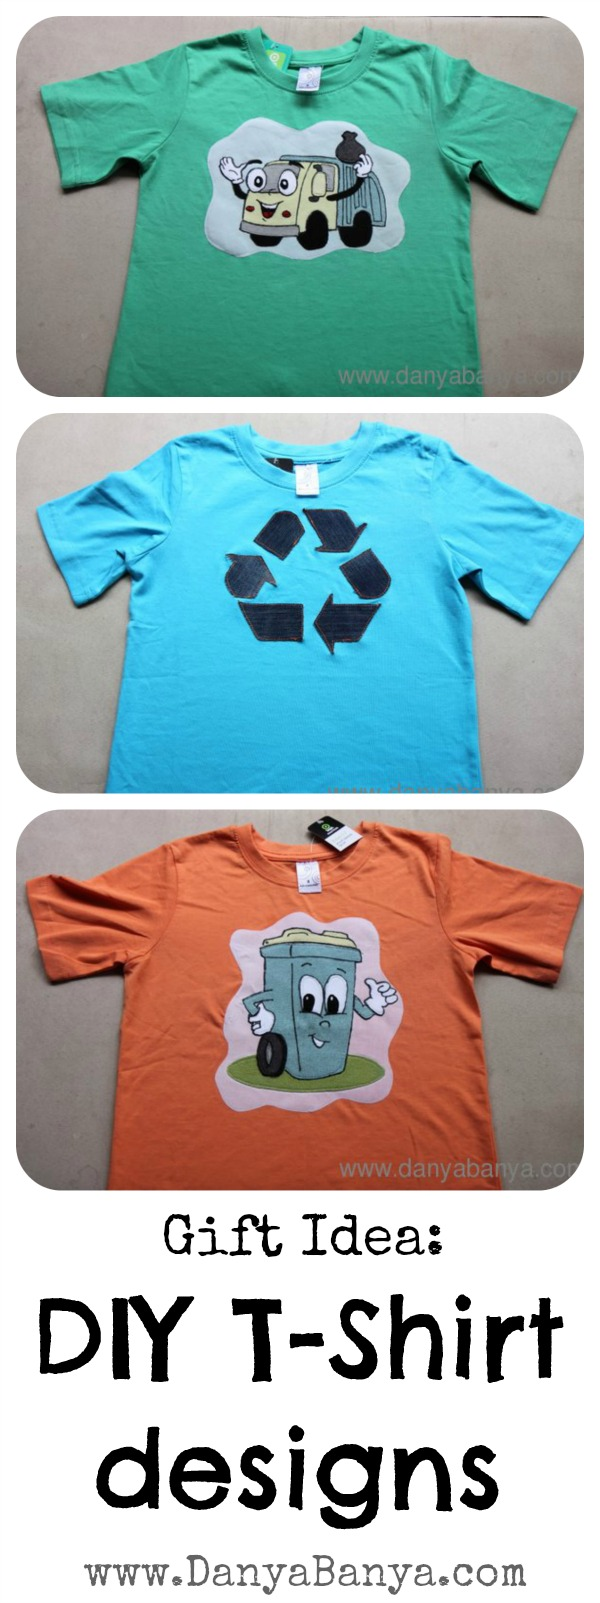 Diy t shirts for a trash obsessed boy danya banya for Diy t shirt design